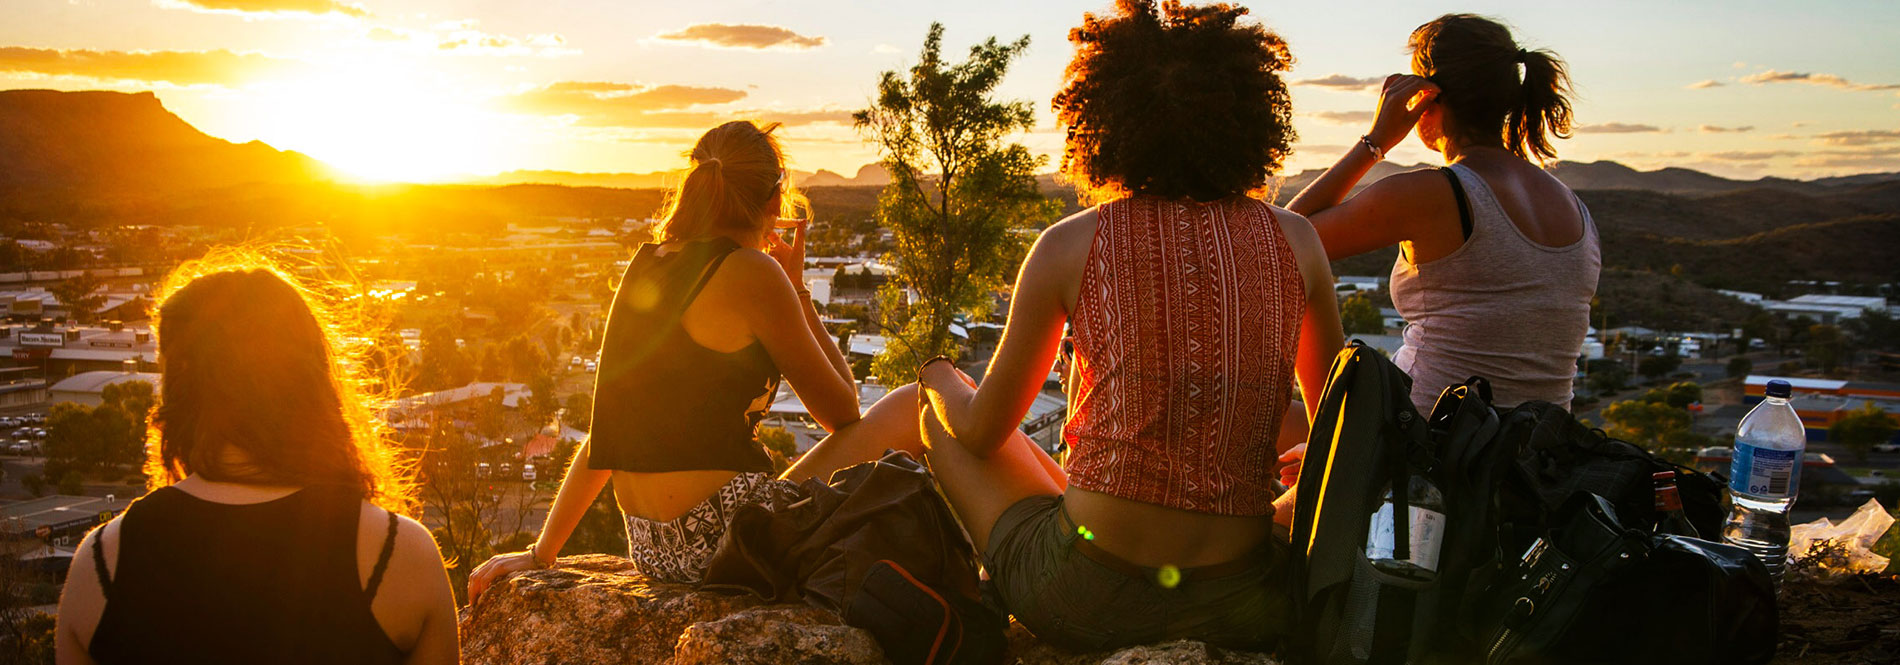 Workaway.info the site for cultural exchange. Gap year volunteer for food  and accommodation whilst travelling abroad.